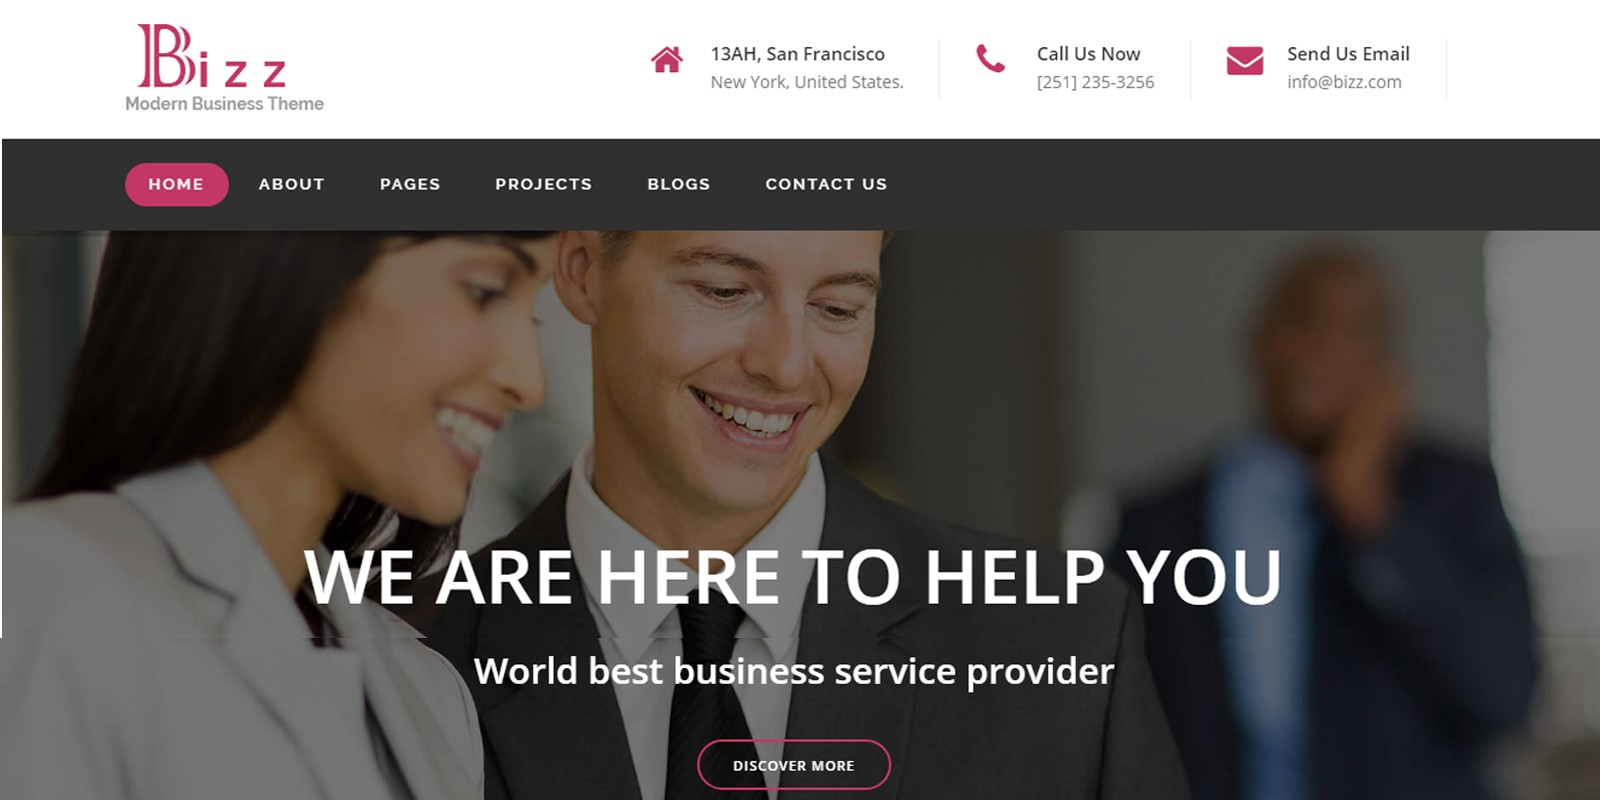 Bizz - Business & Corporate HTML Template - Business HTML Website ...